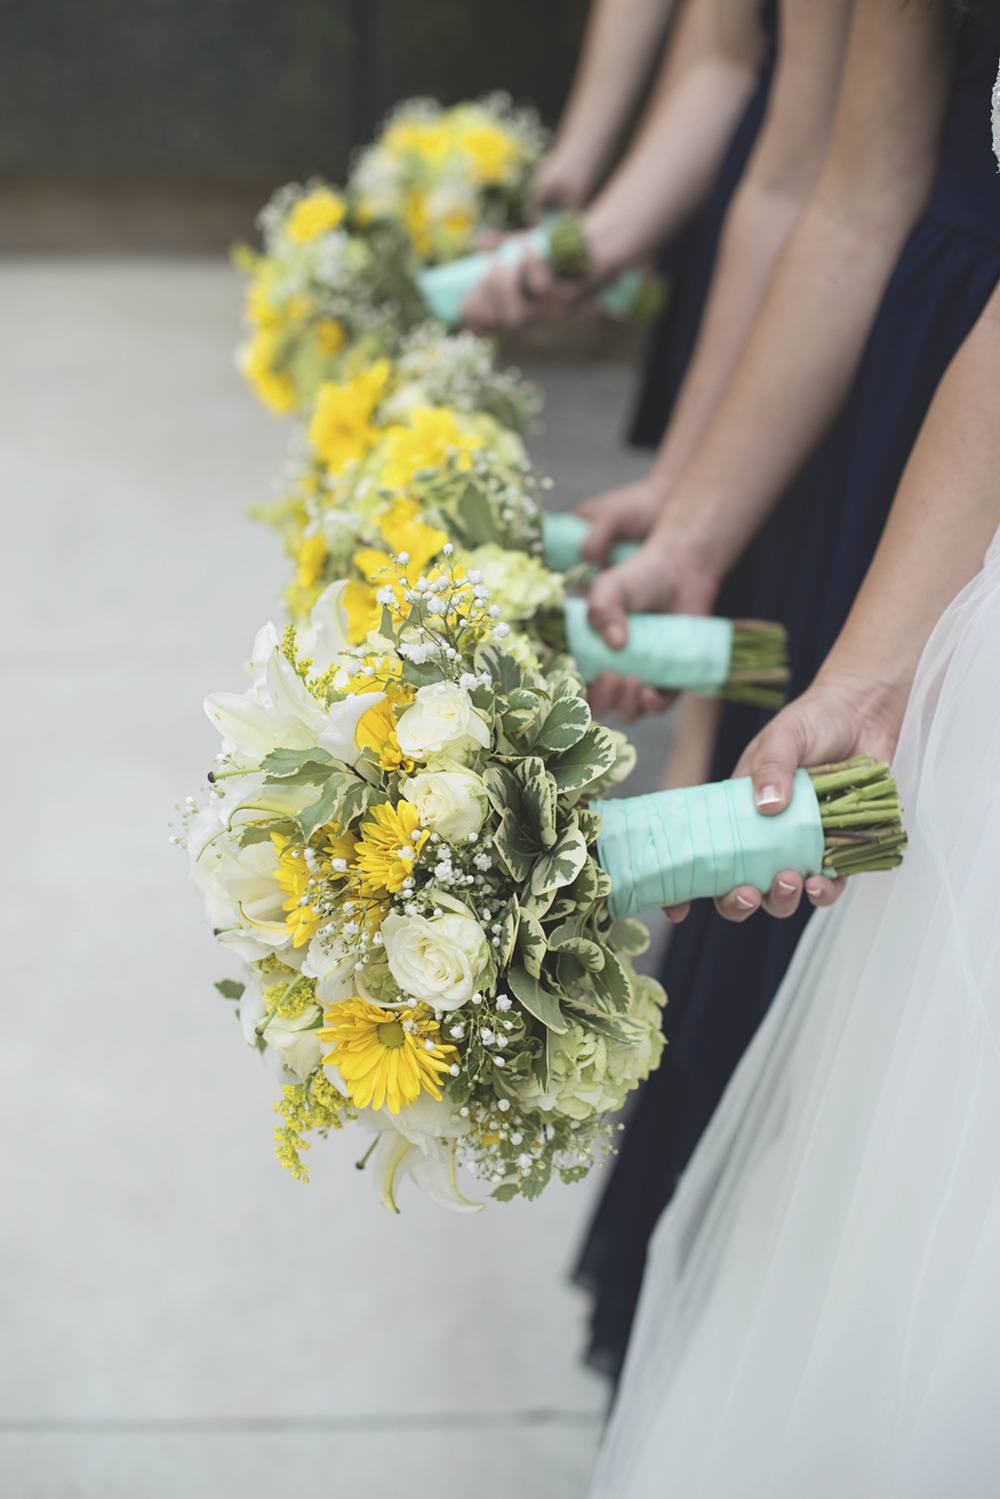 LDS Temple Mormon Wedding | Washington, DC, Wedding | Yellow daisy and white rose bouquets